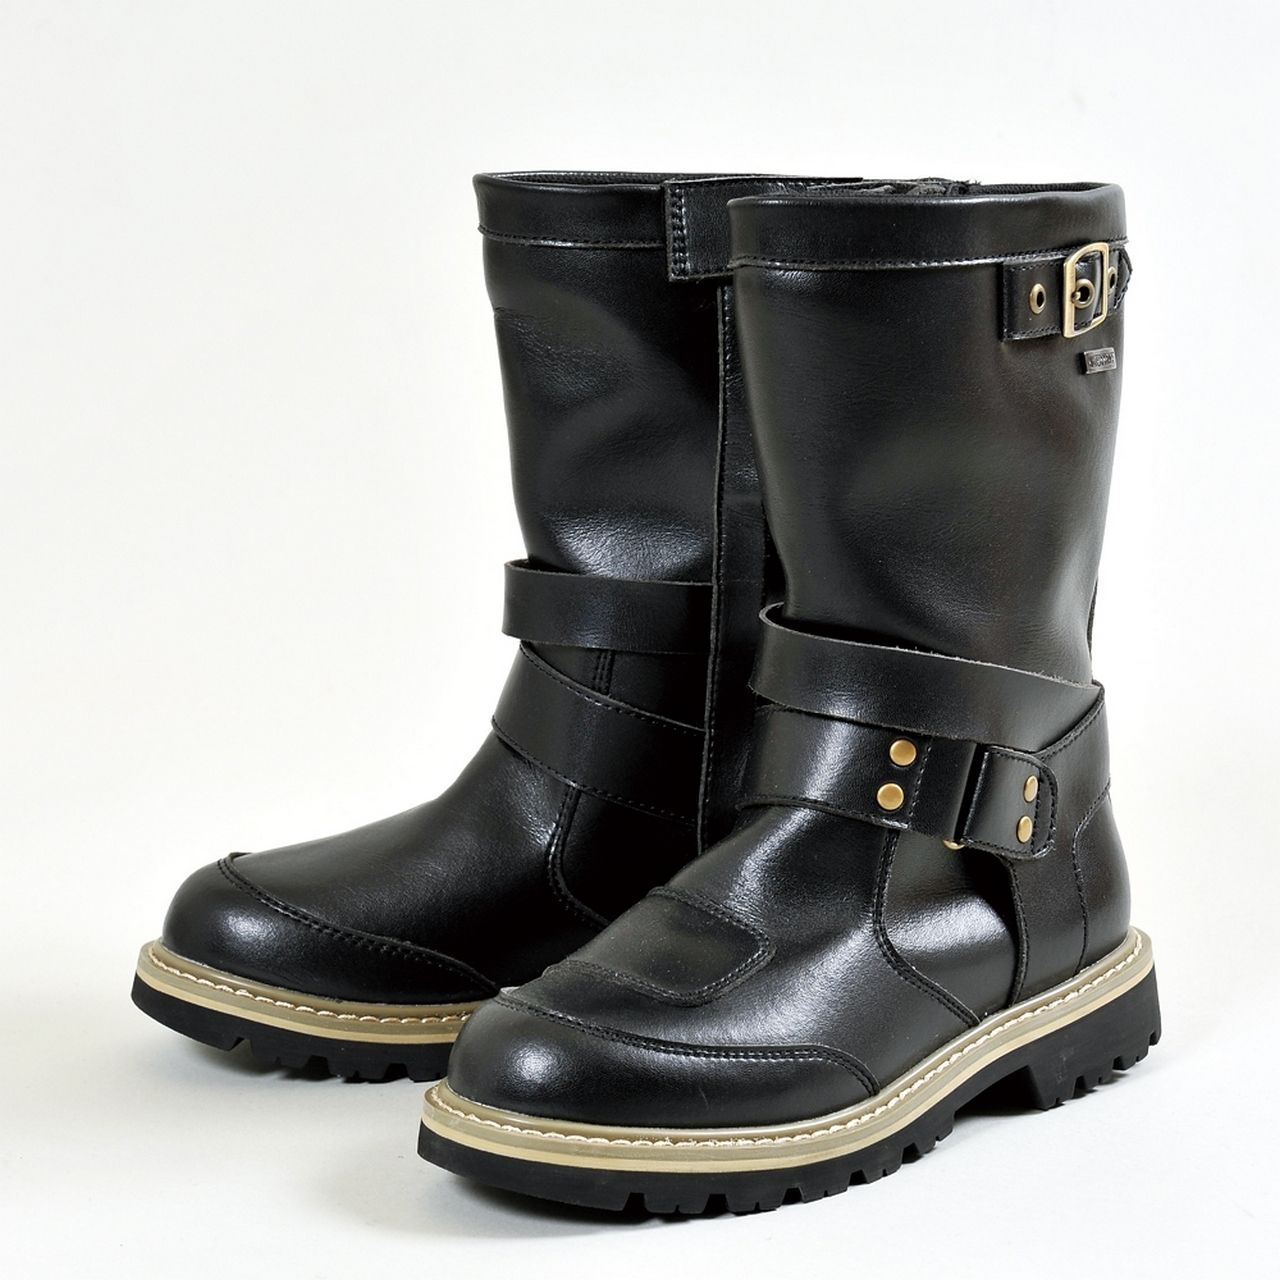 ROSSO Giày chống thấm nước Belted Boots